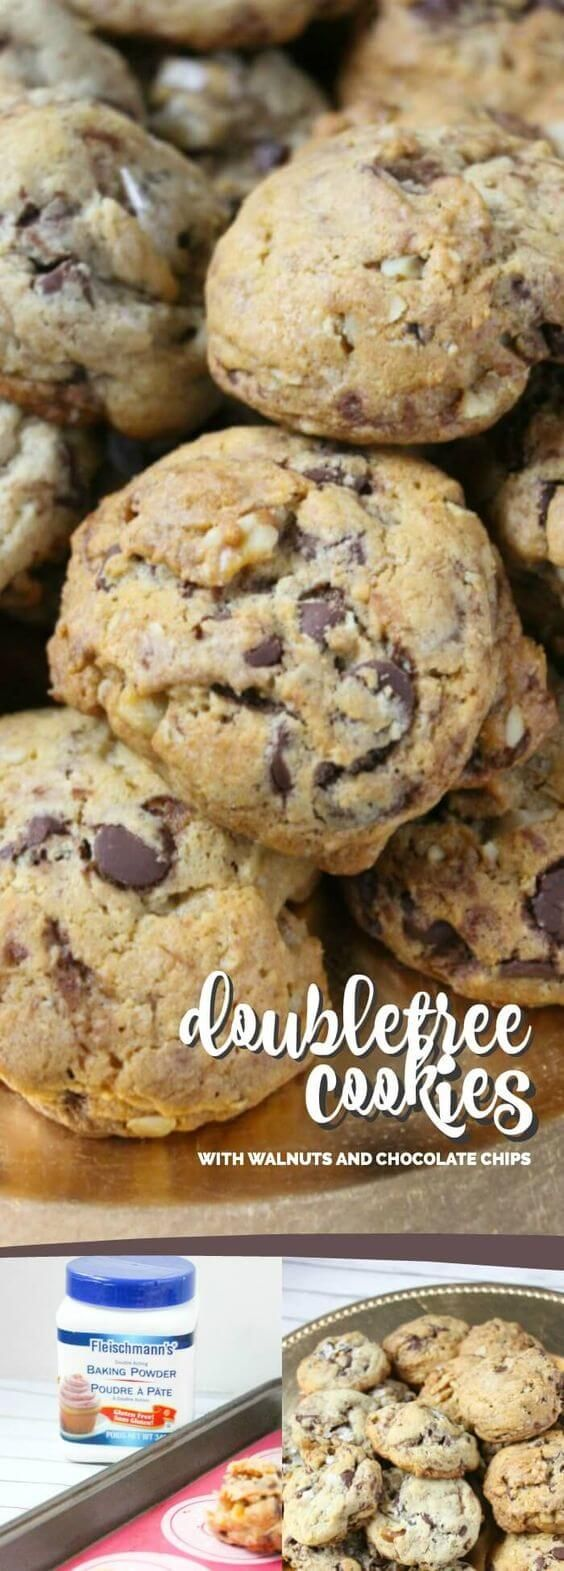 Doubletree Cookies with Walnuts & Chocolate Chips via @spaceshipslb